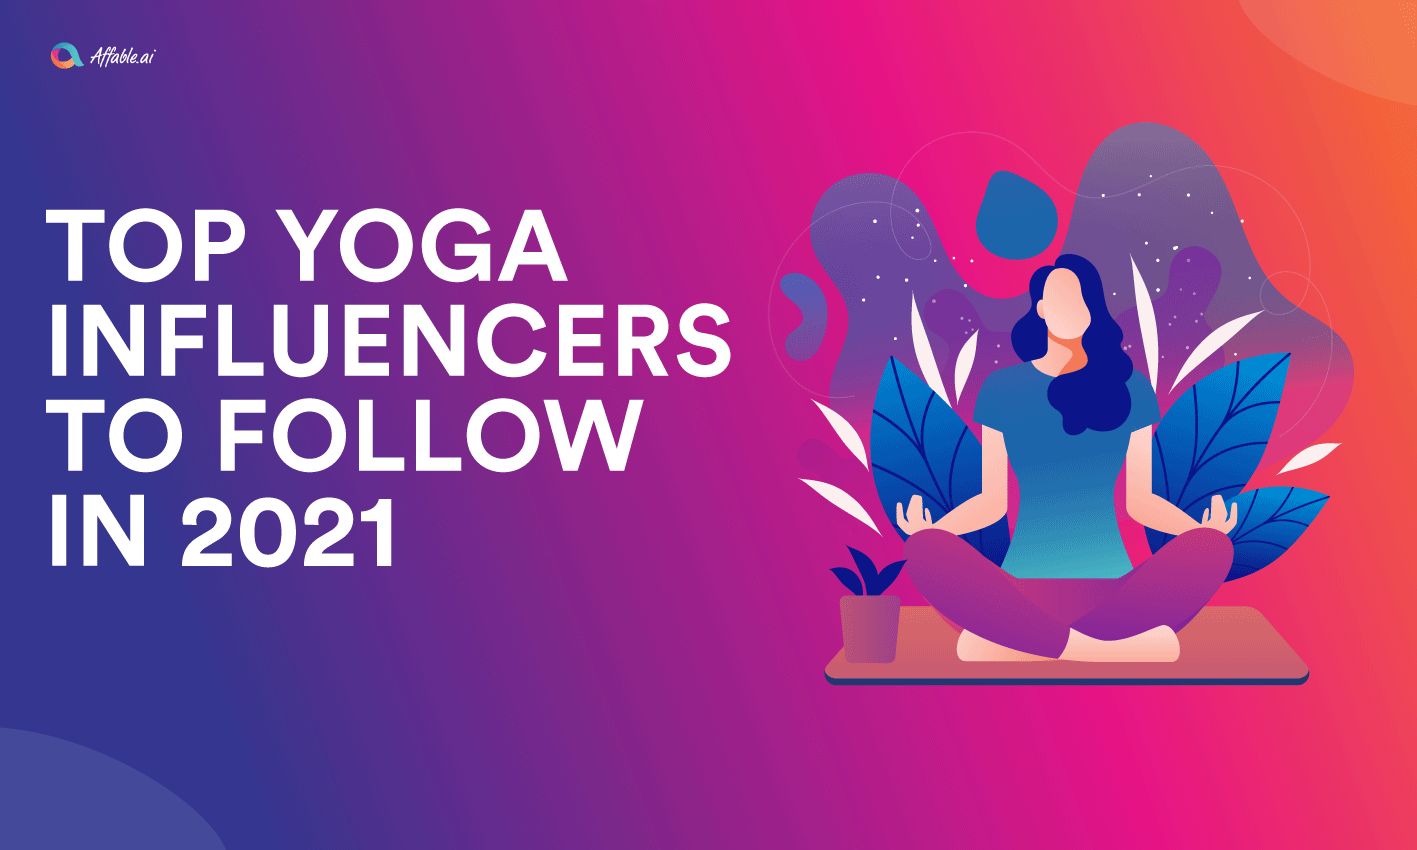 Mental Health Influencers: Part 2) Top Yoga Influencers To Follow